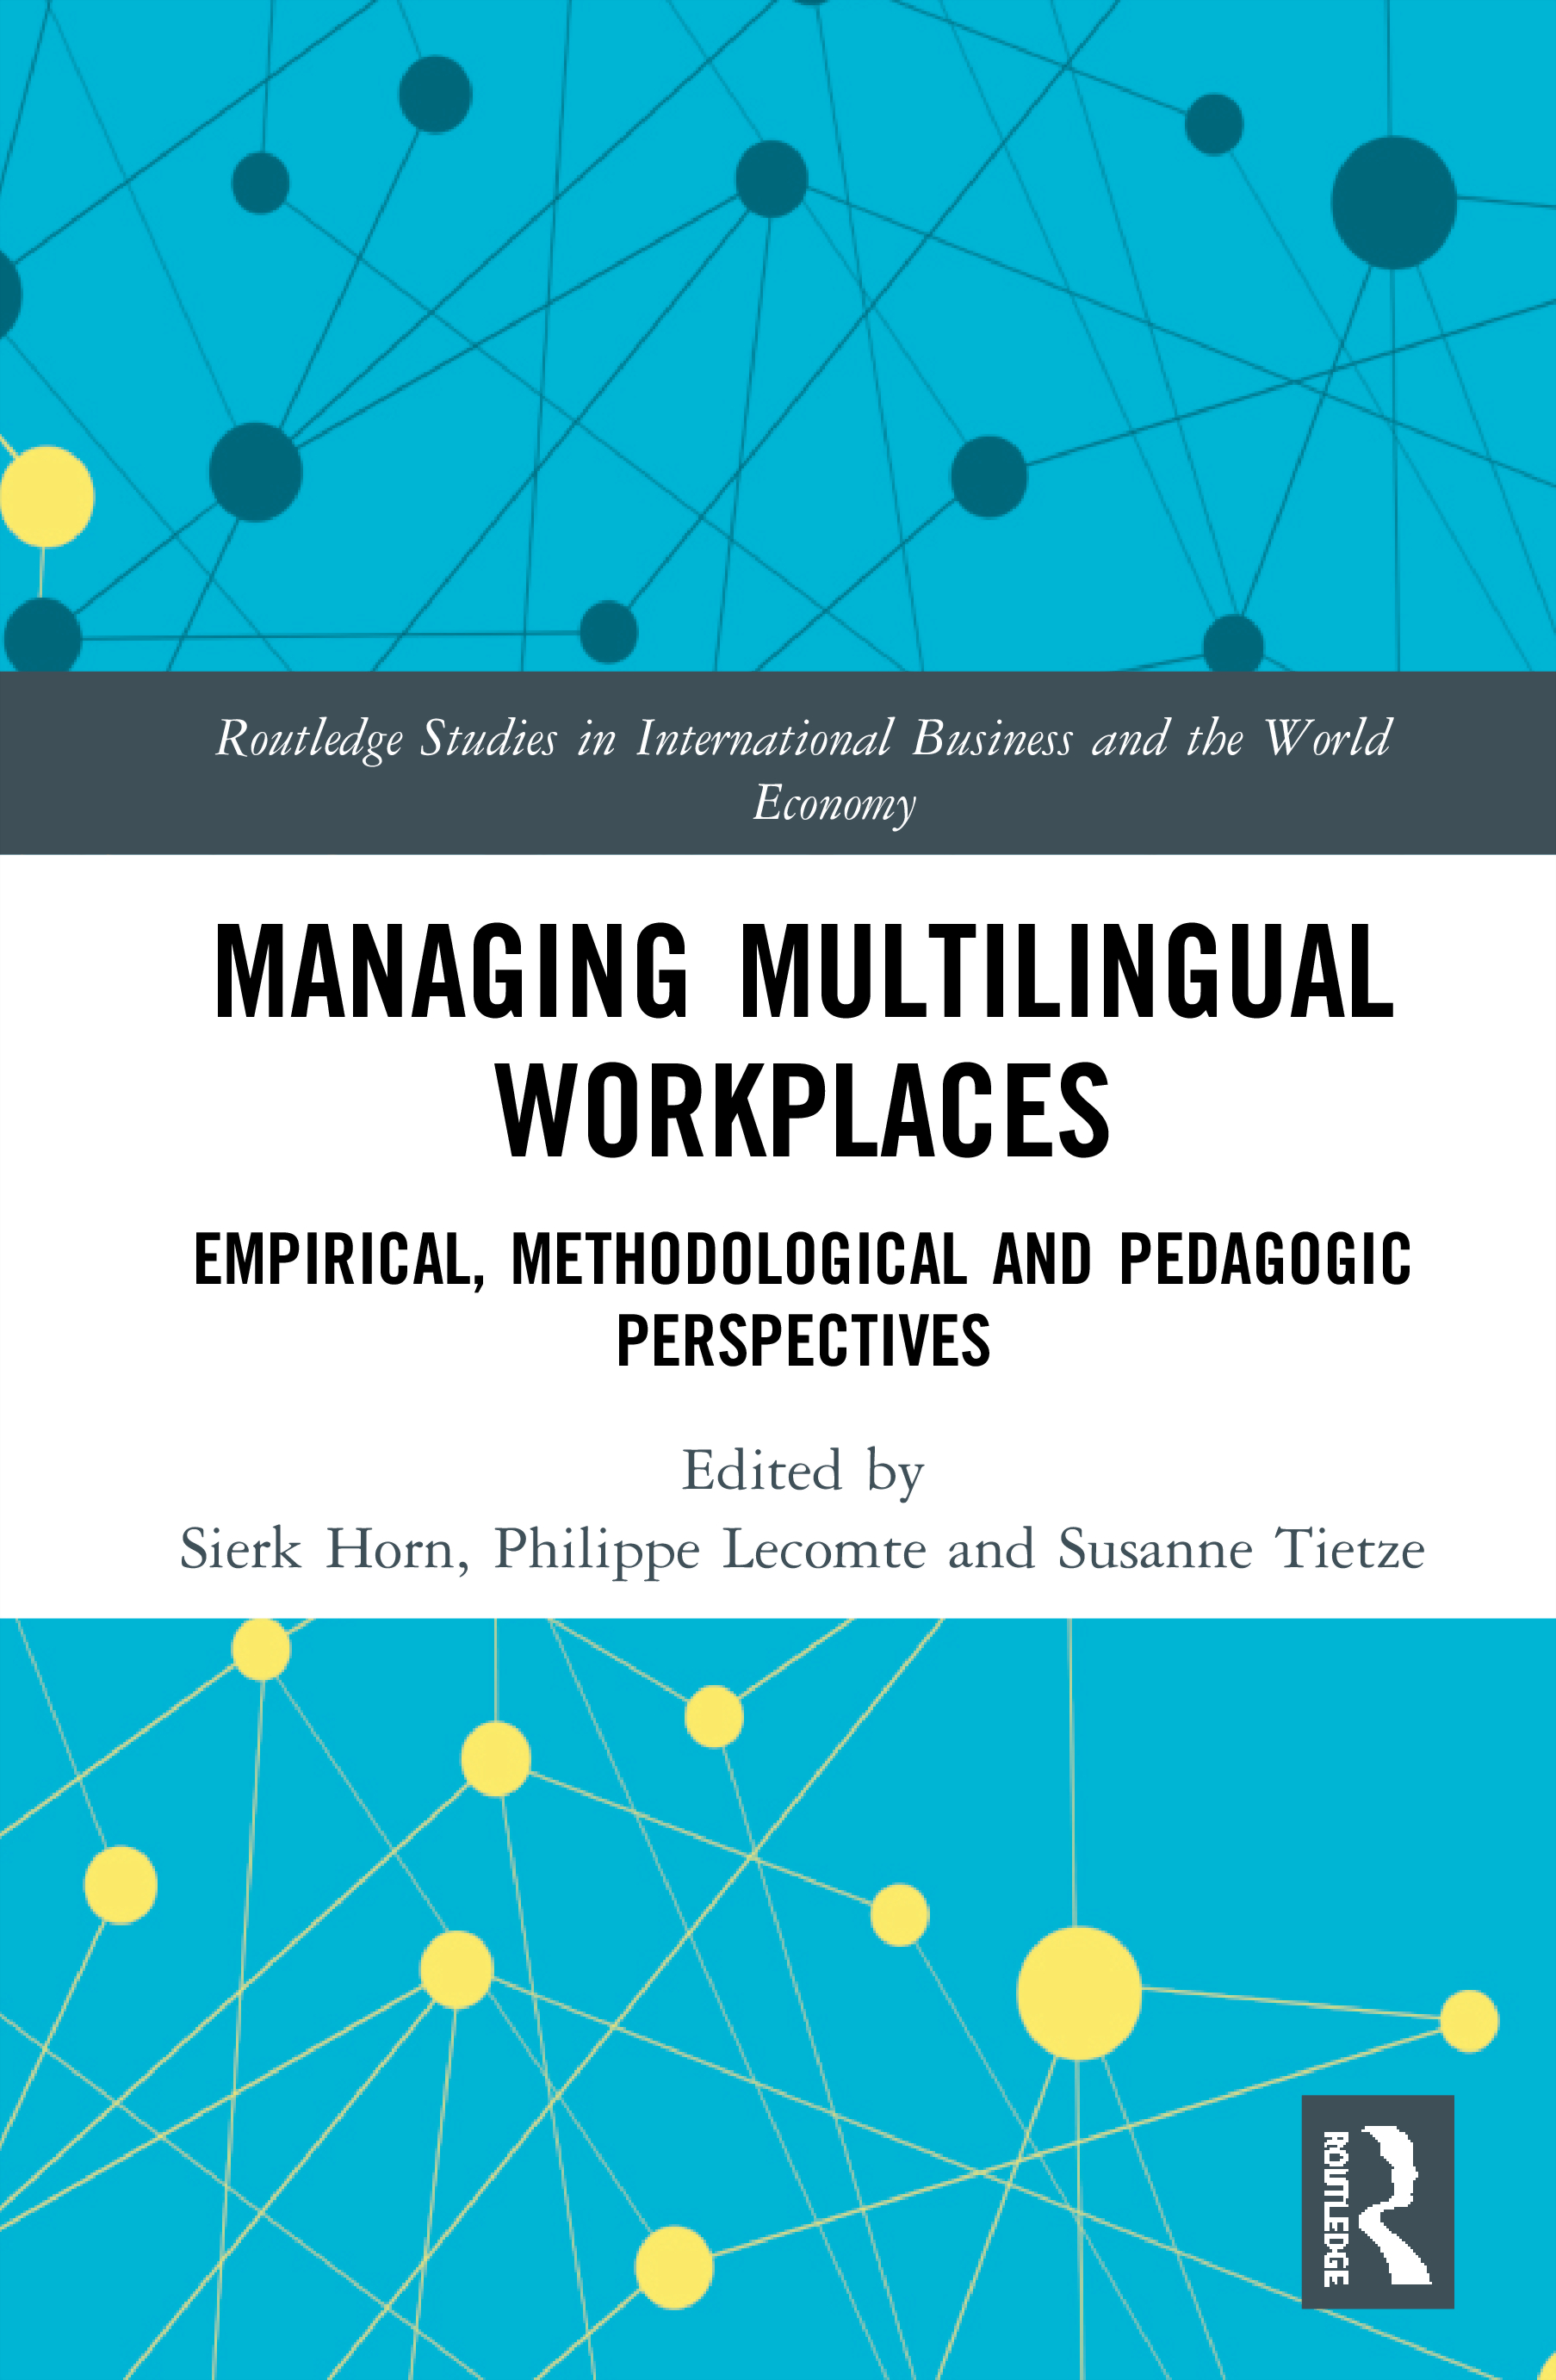 Managing Multilingual Workplaces: Empirical, Methodological and Pedagogic Perspectives, 1st Edition (Hardback) book cover